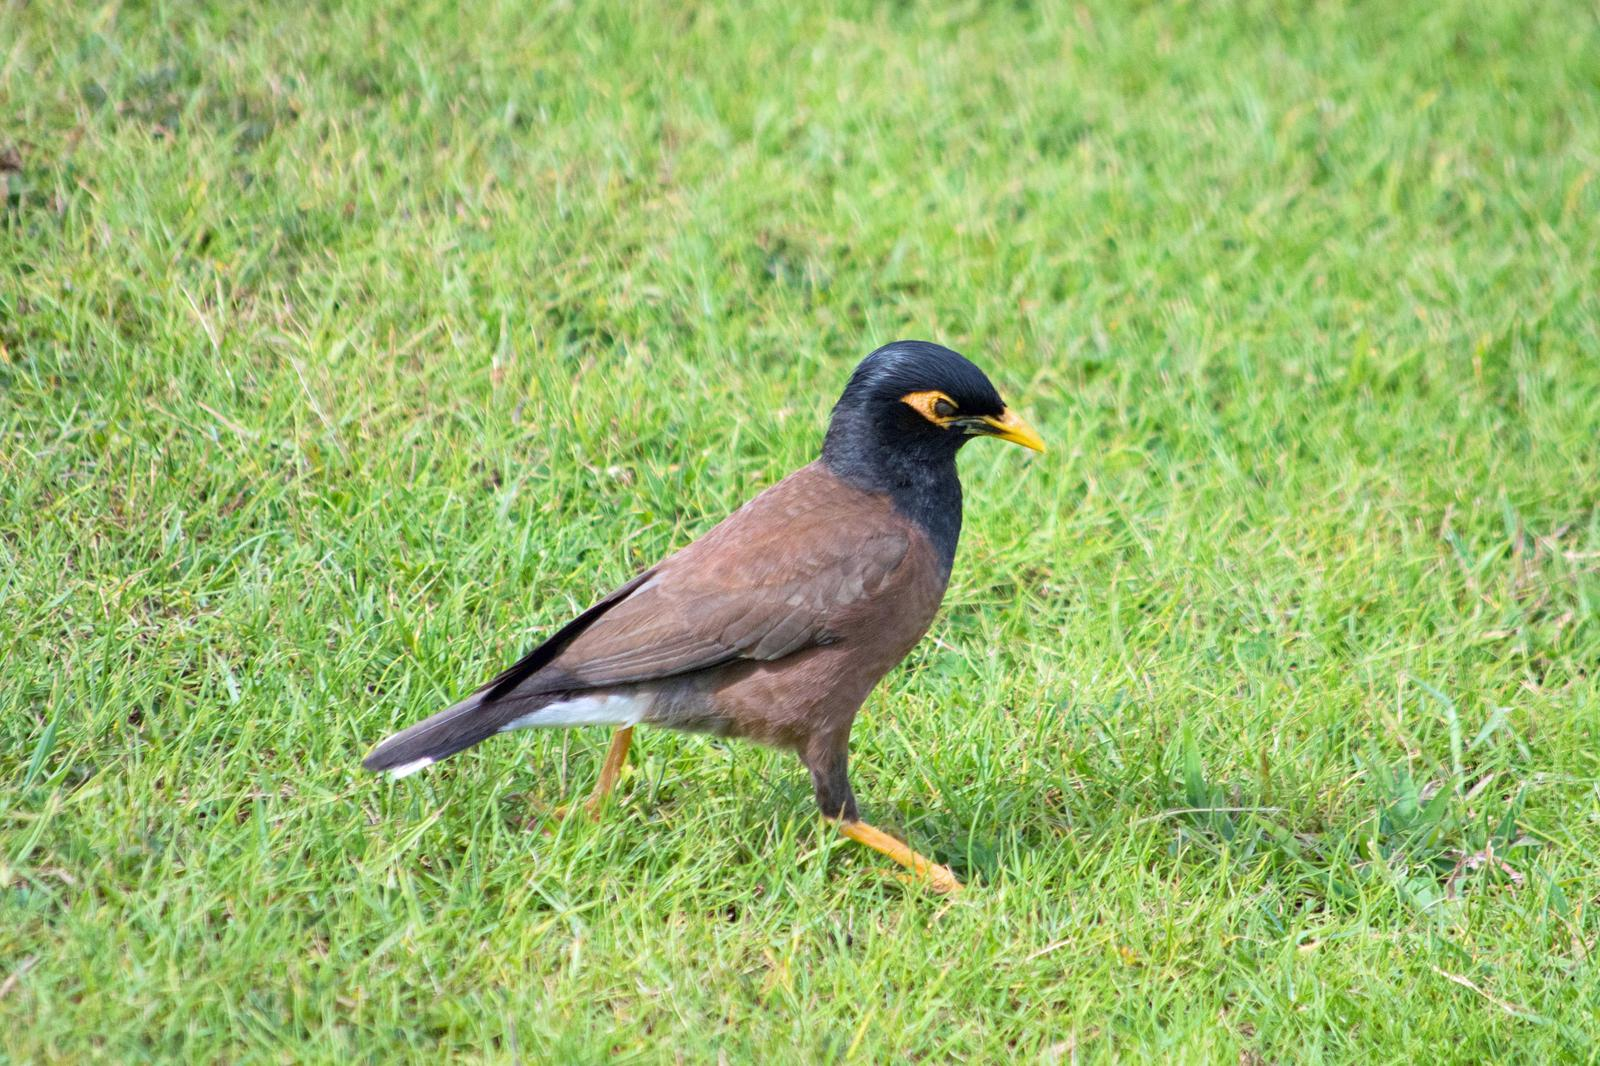 Common Myna Photo by Joseph Angstman